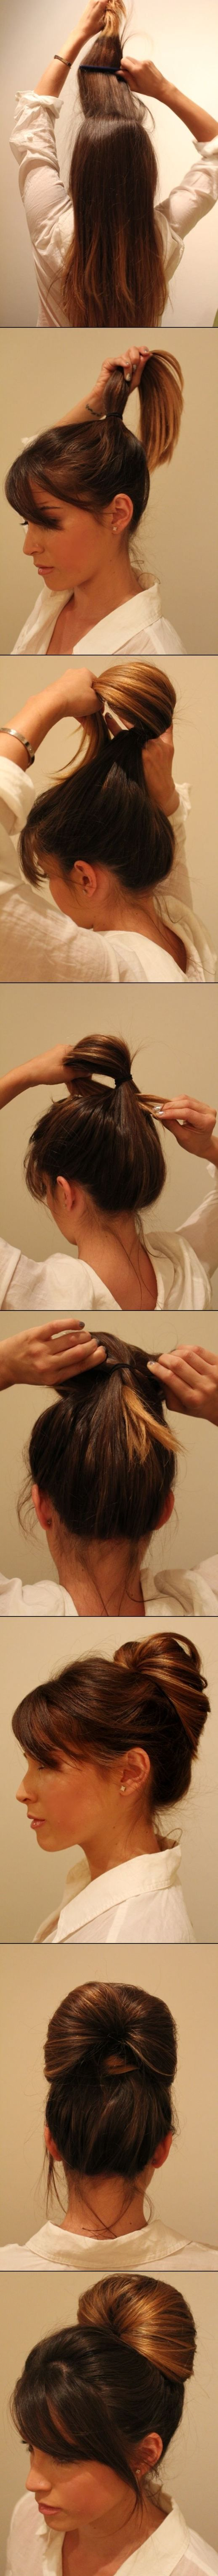 Looks easy enough.. Though my hair is prob too heavy